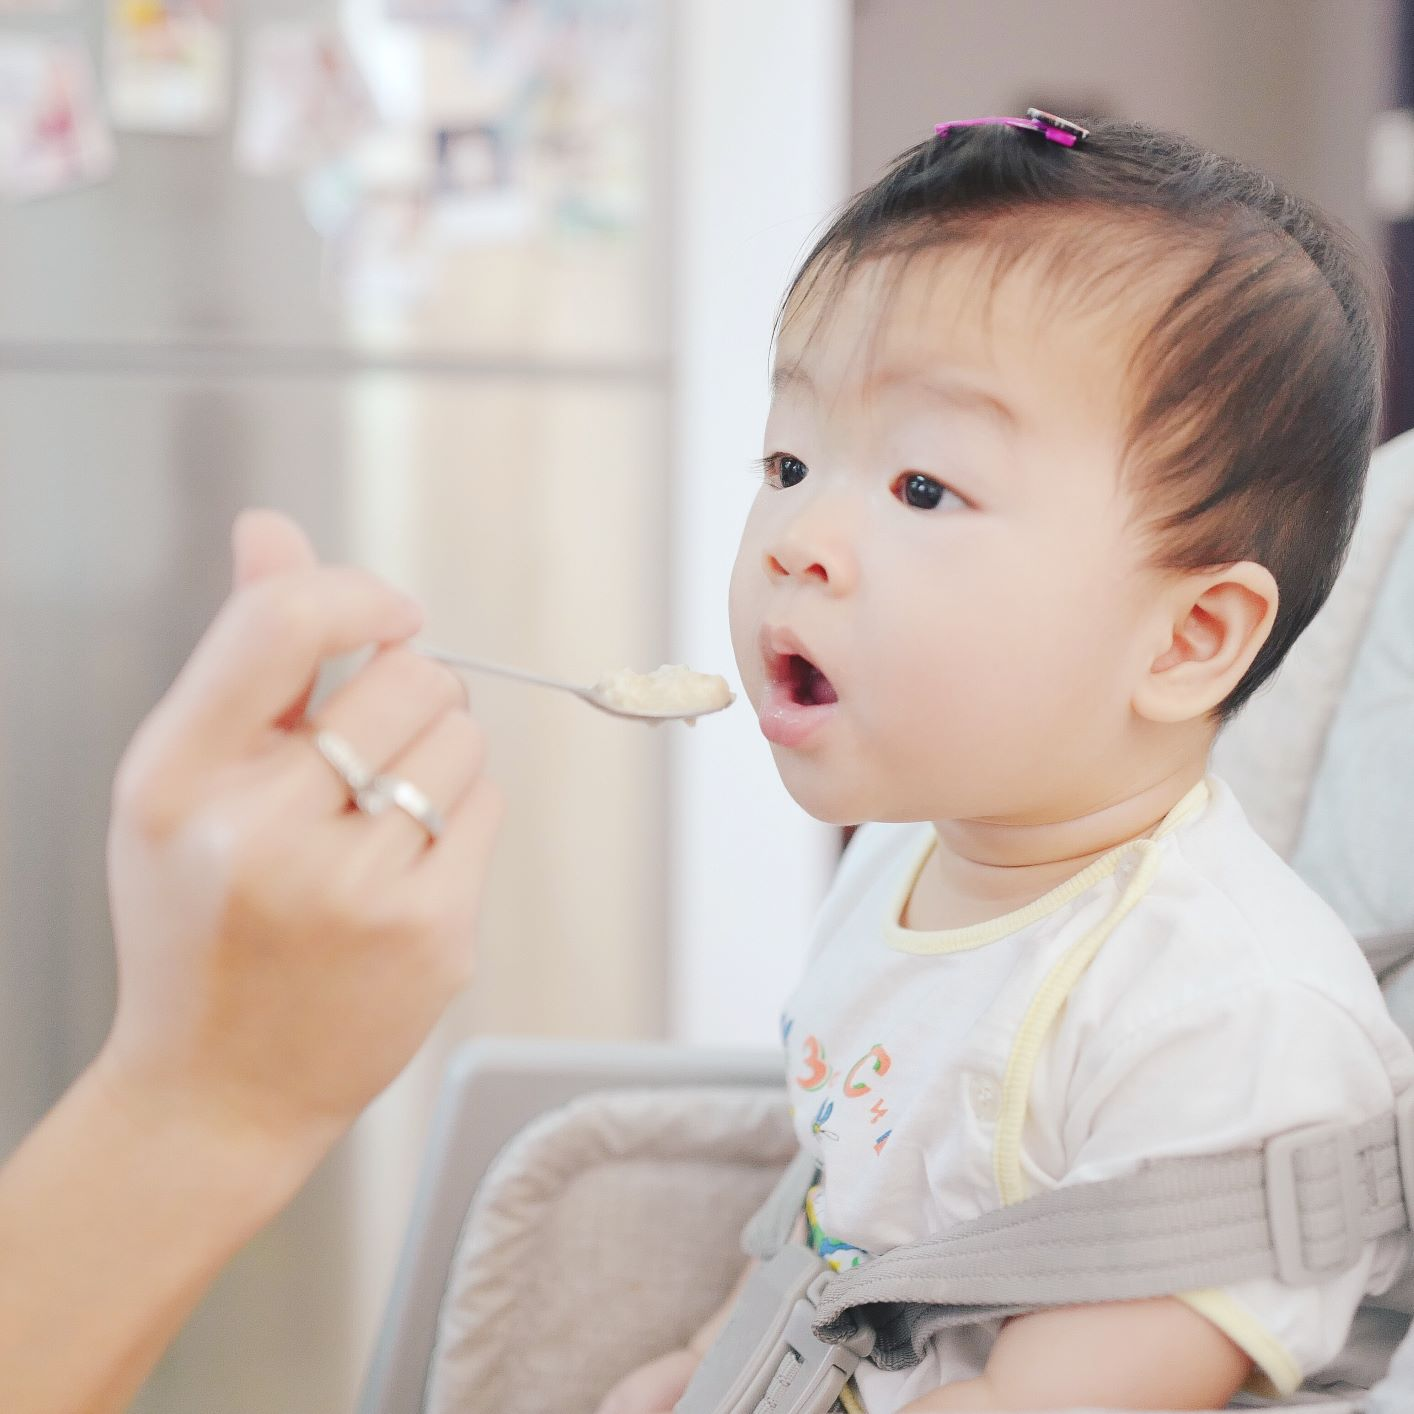 when should my child visit the dentist